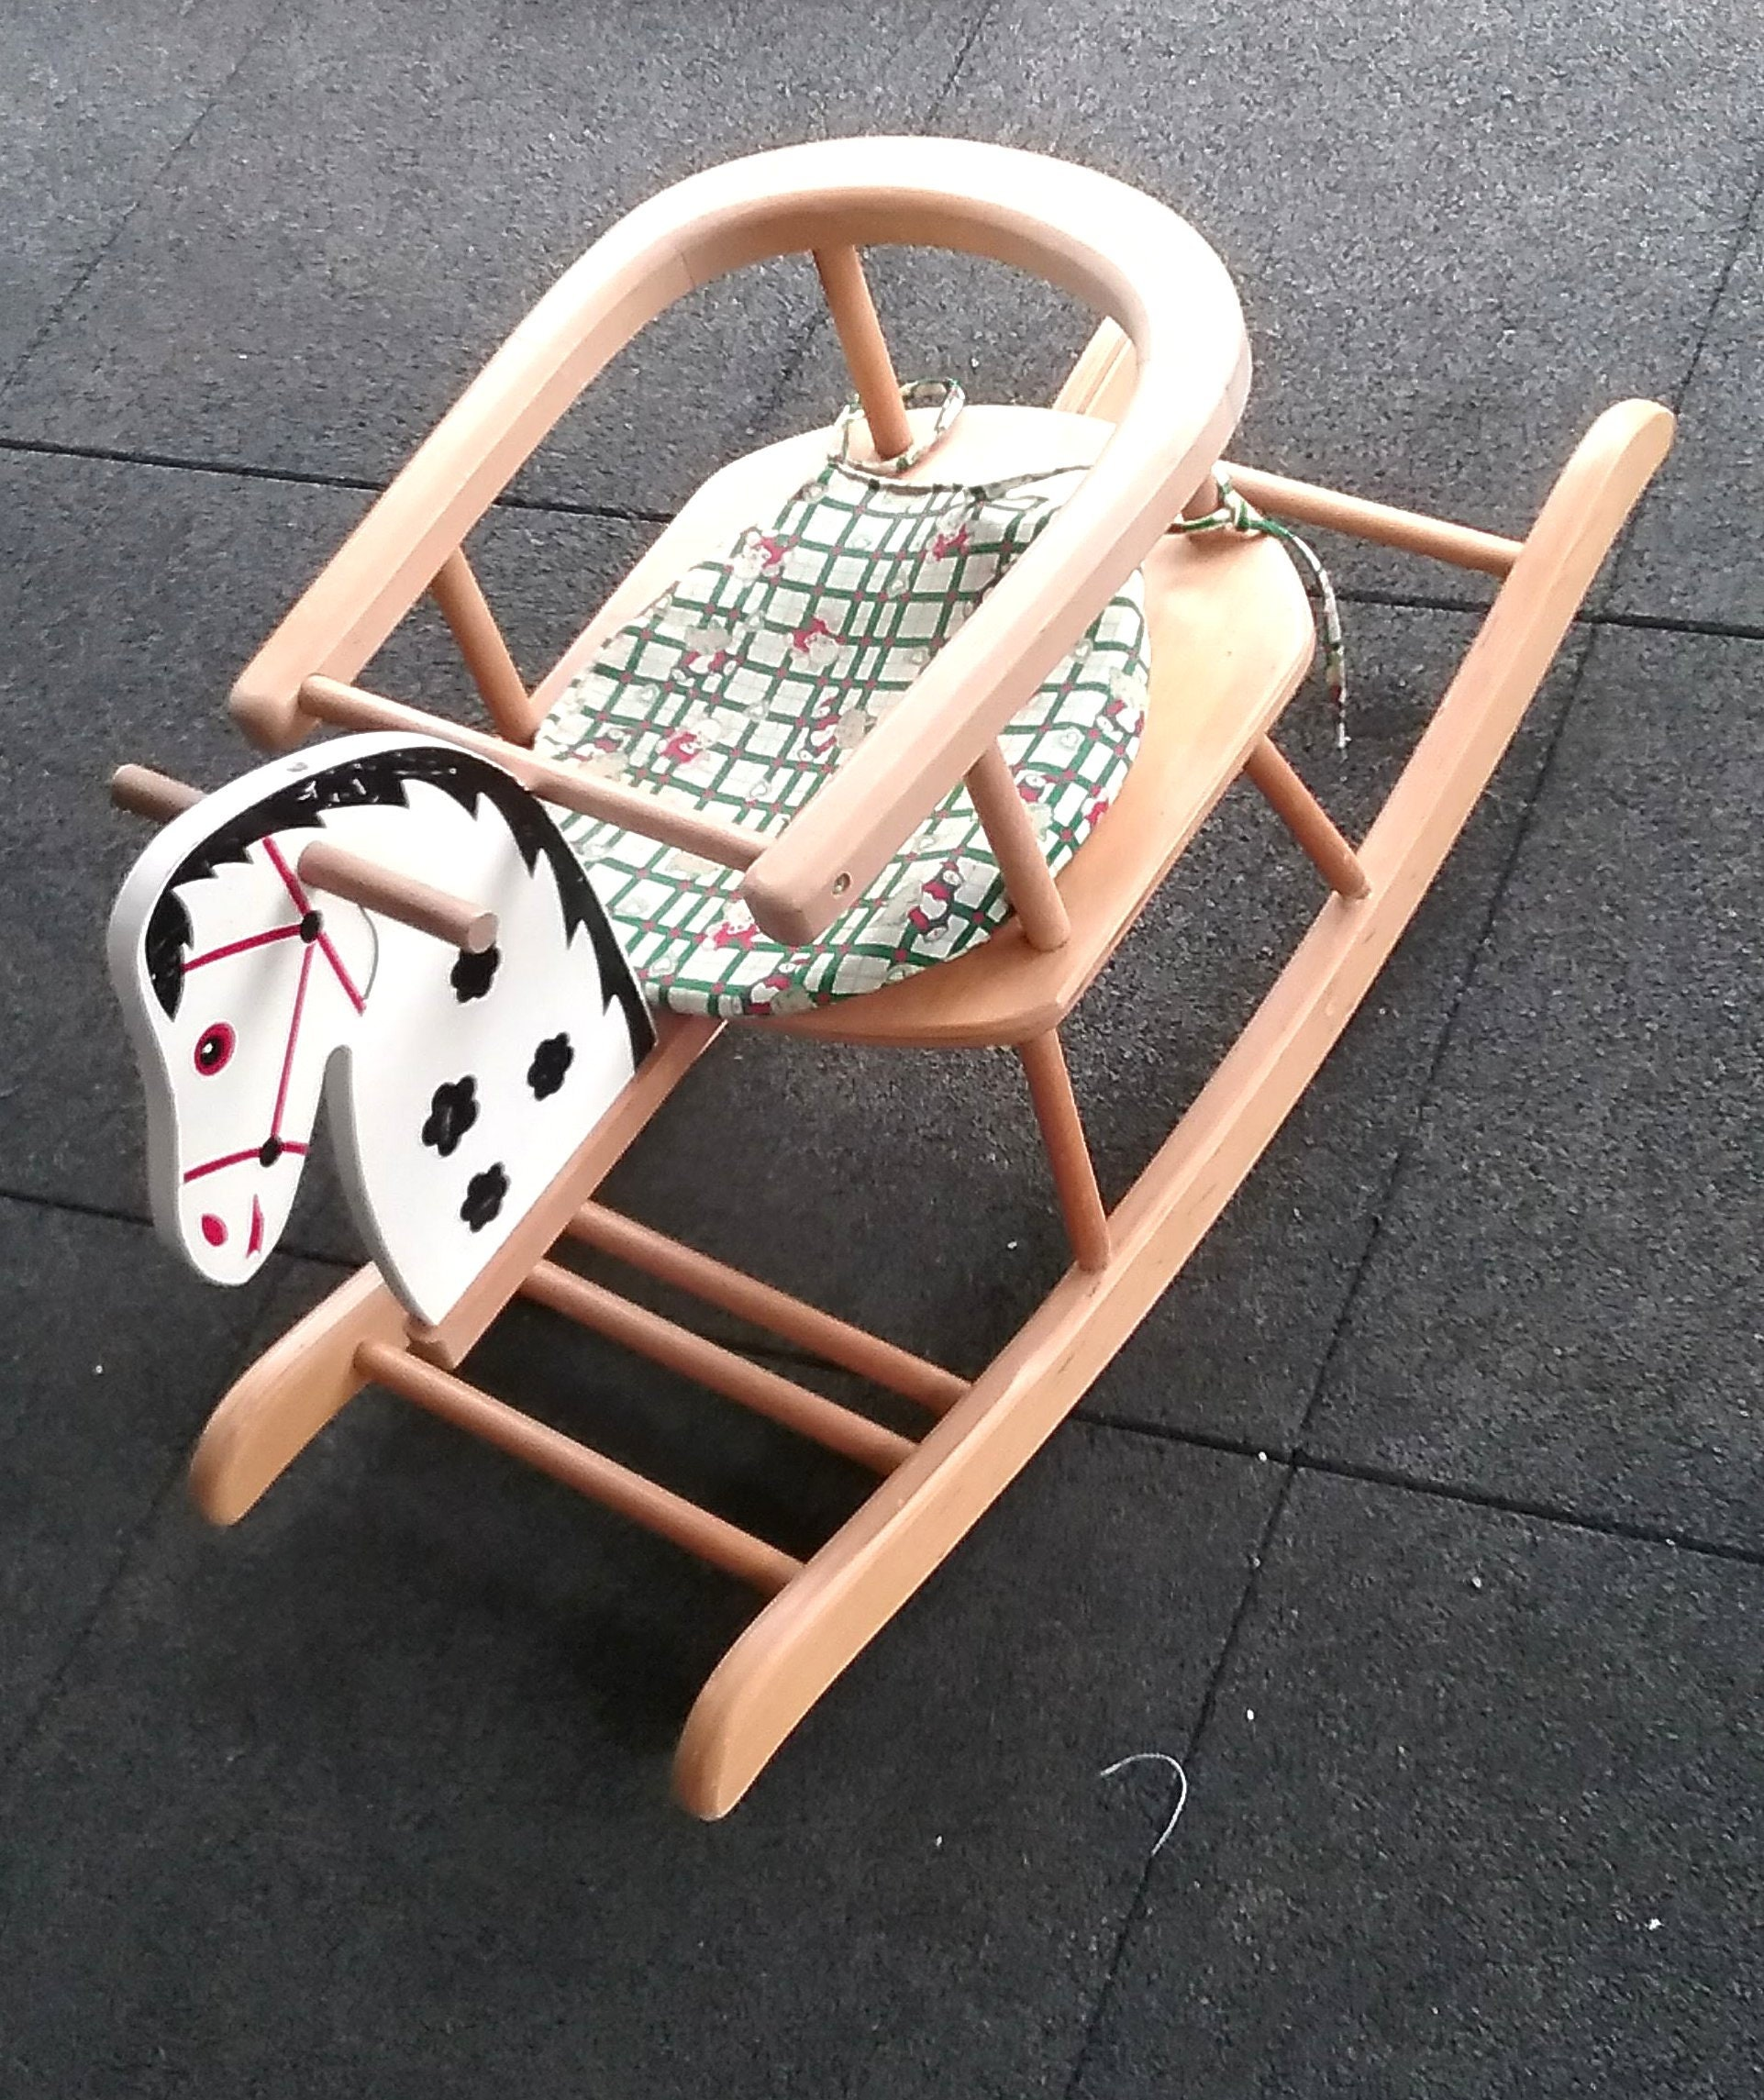 Pleasant Rocking Horse Made Of Wood Rocking Chair With Pillow Baby Andrewgaddart Wooden Chair Designs For Living Room Andrewgaddartcom